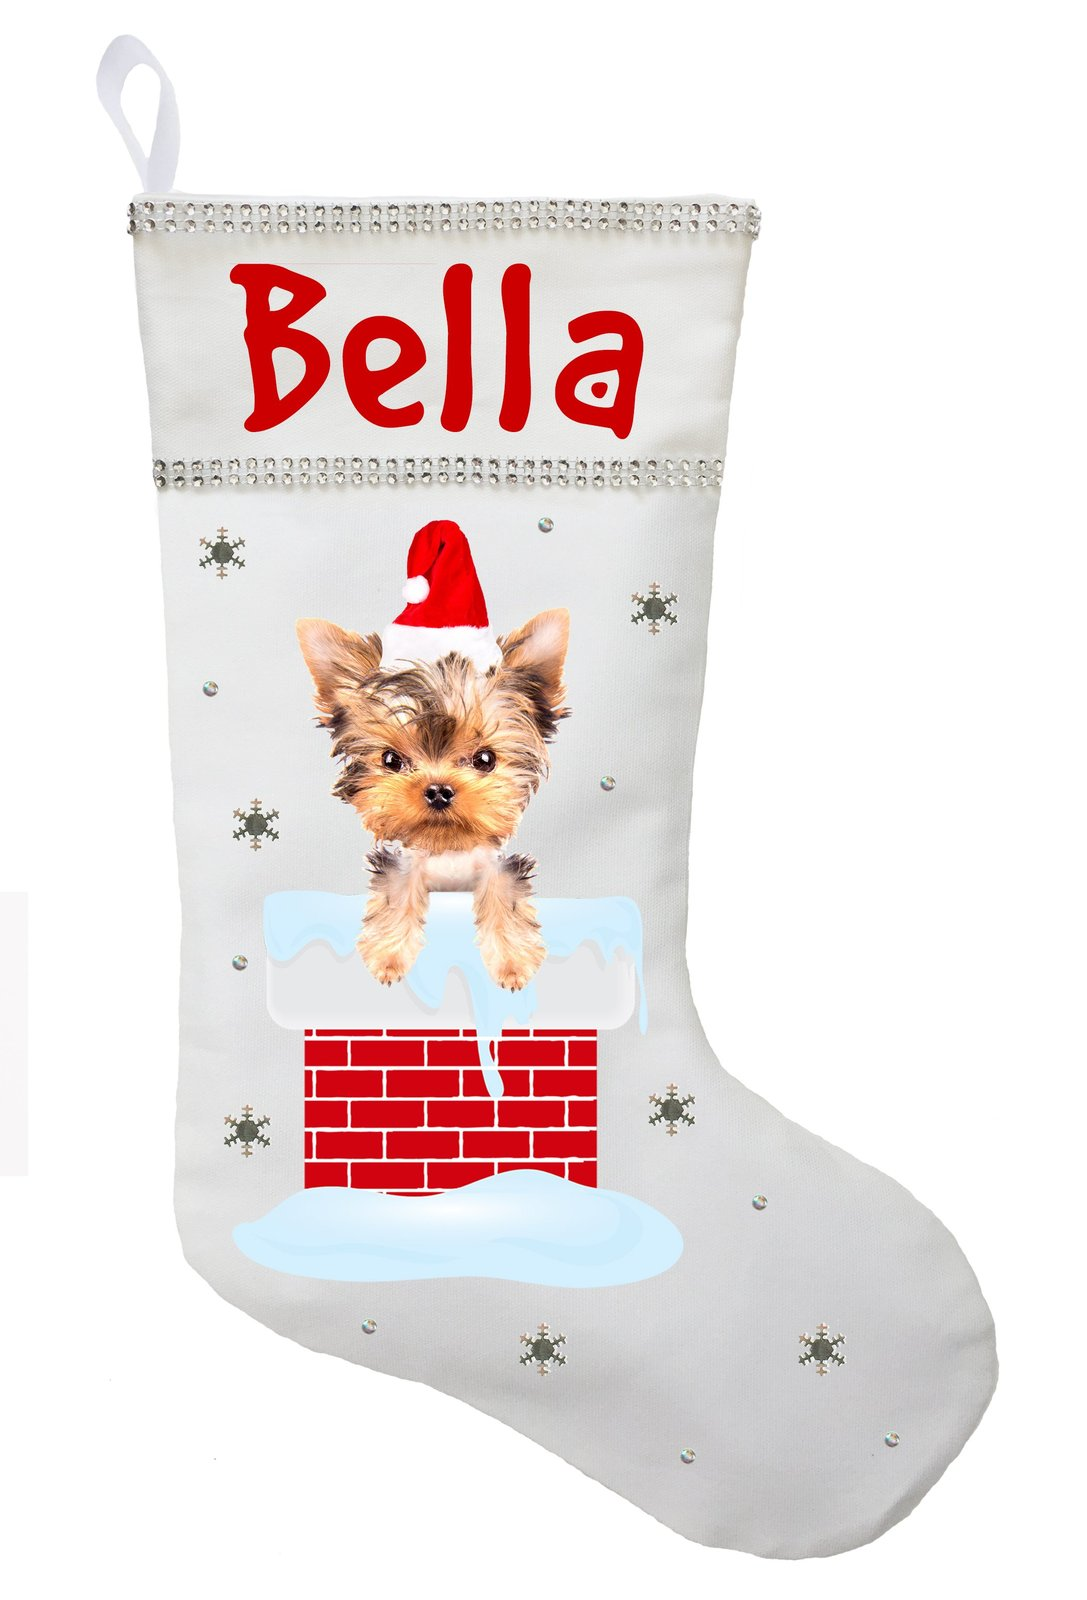 Yorkshire Terrier Christmas Stocking - Personalized Yorkie Stocking - White